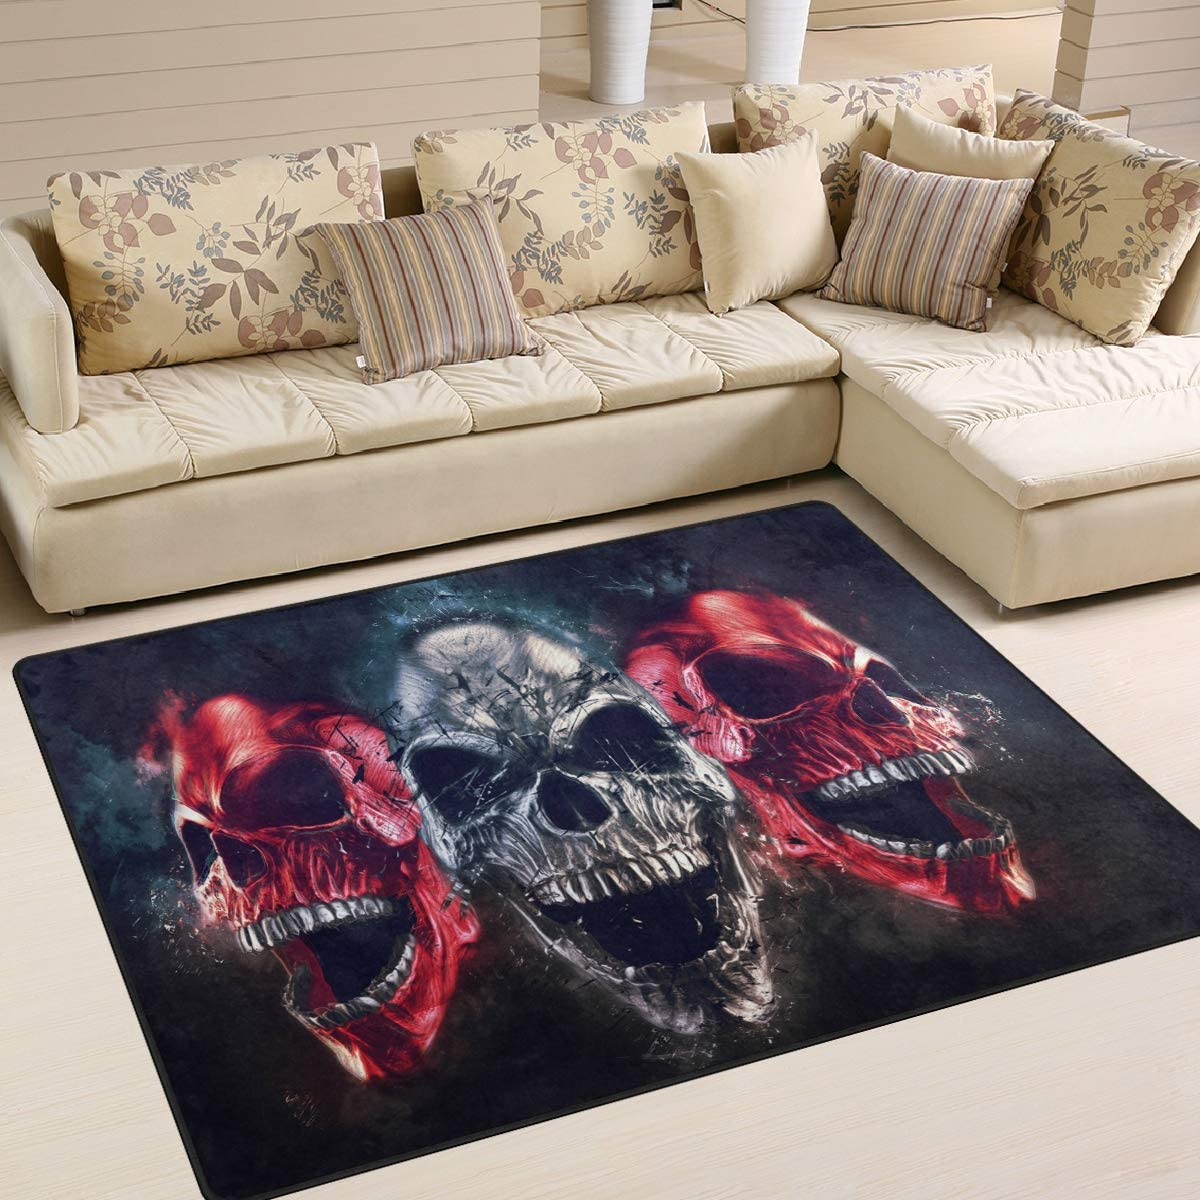 ALAZA Abstract Outlet ☆ Free Shipping Sugar Skull Halloween Artwork Area Rugs for Ranking TOP18 Rug L